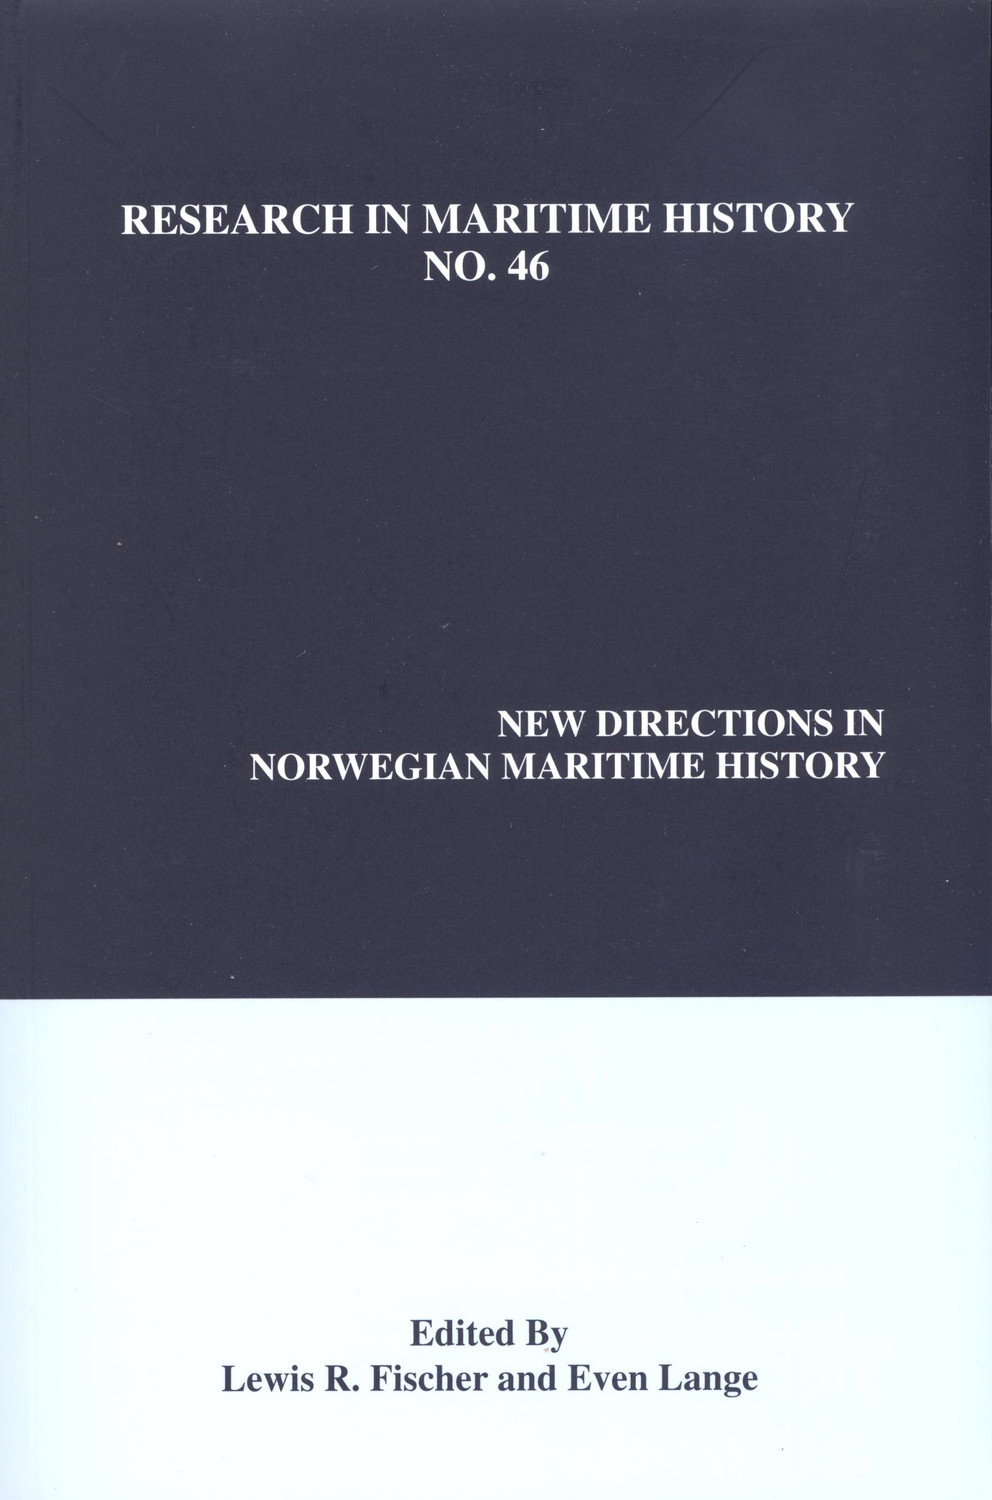 New Directions in Norwegian Maritime History